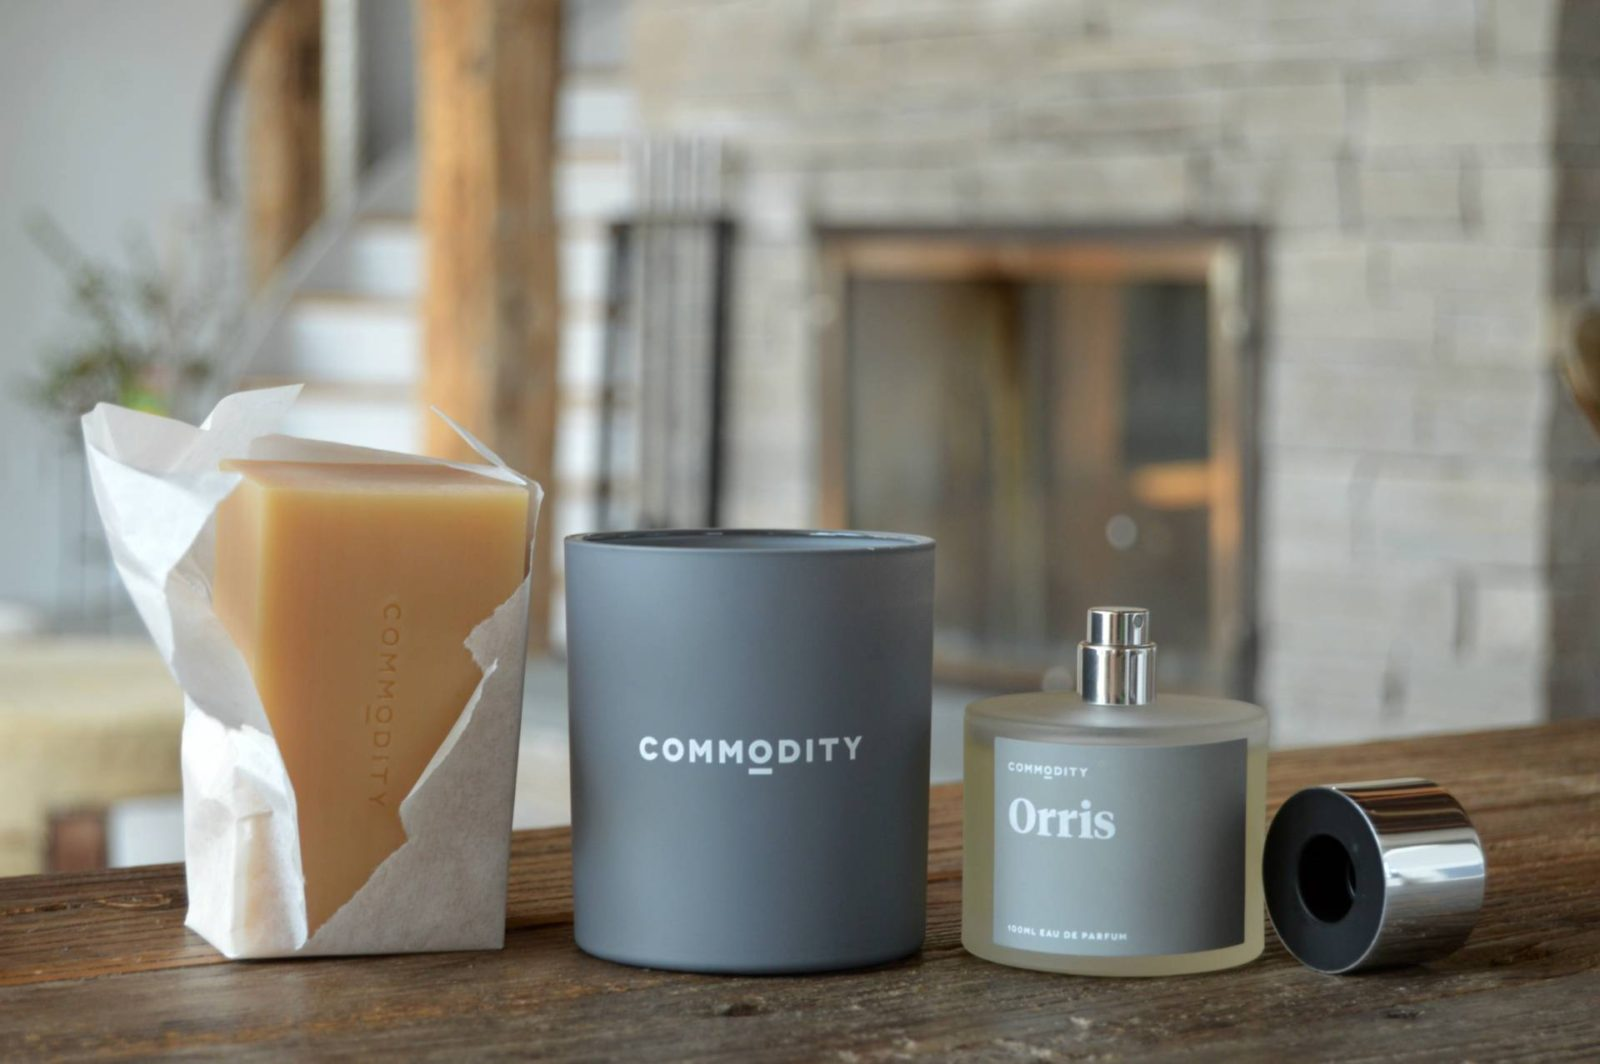 Commodity Home Candle Collection Launches at Sephora!